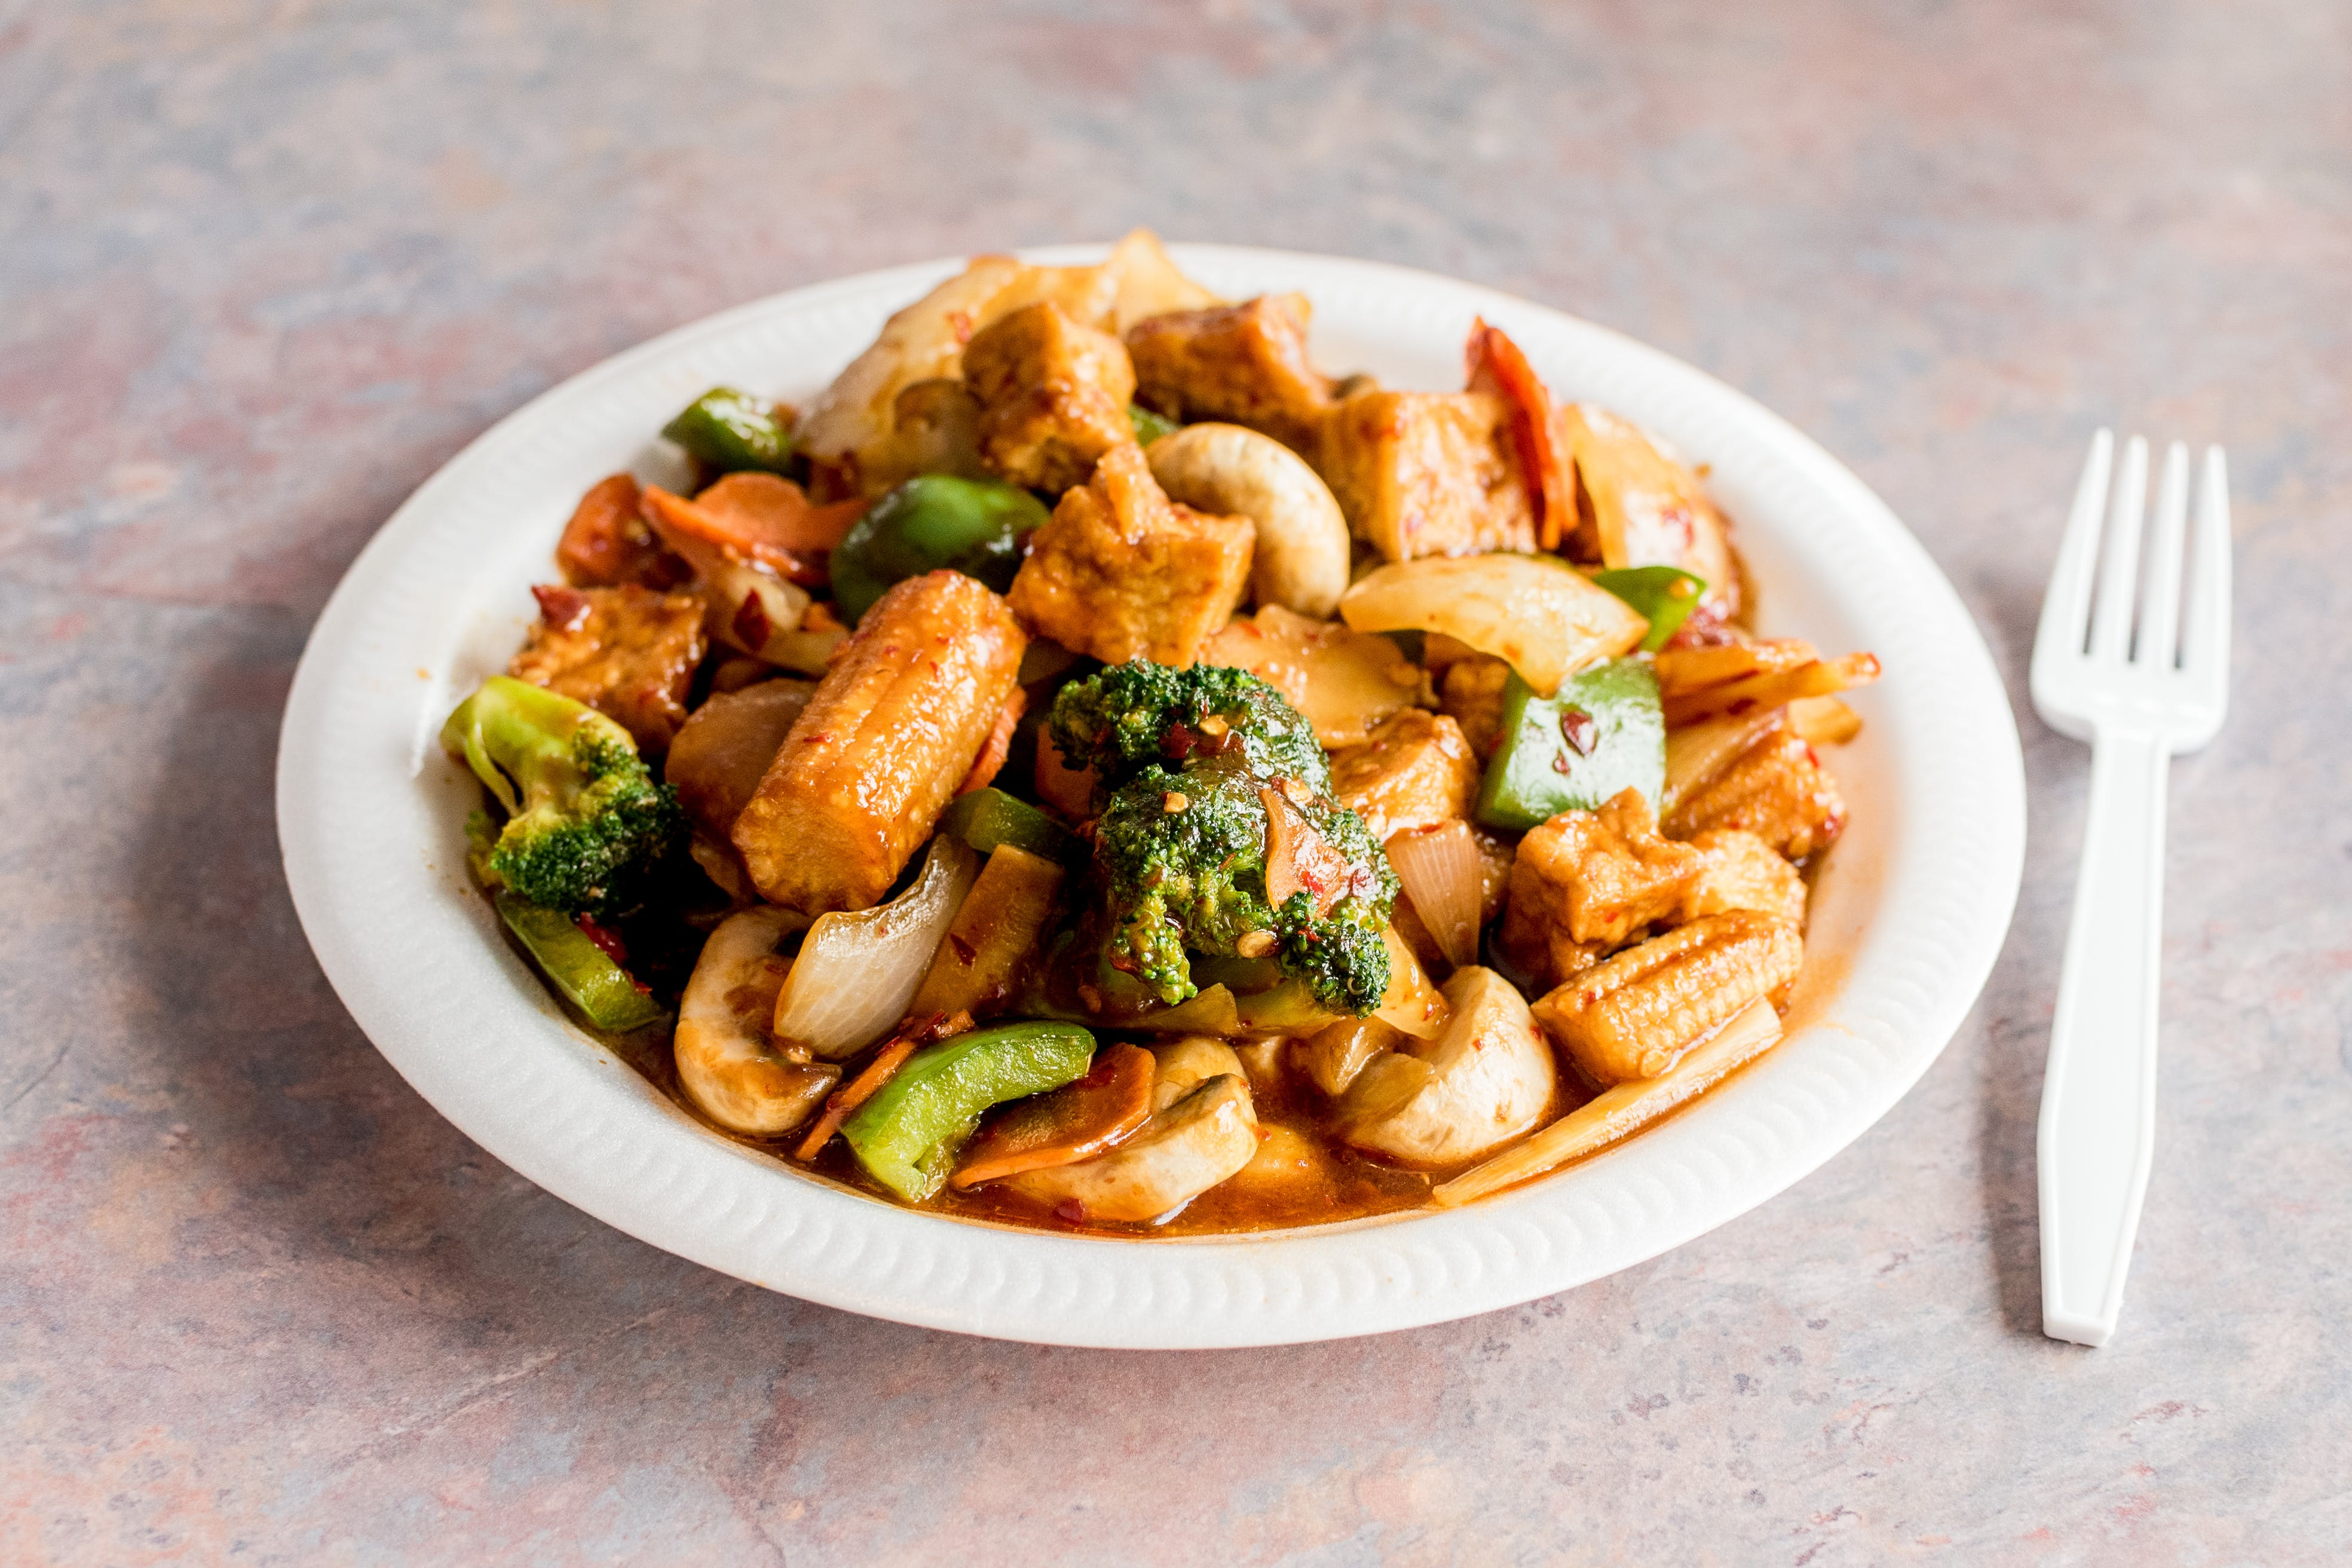 H17. To Fu Mixed Vegetables from Happy Wok - 2409 W Broadway, Monona in Monona, WI